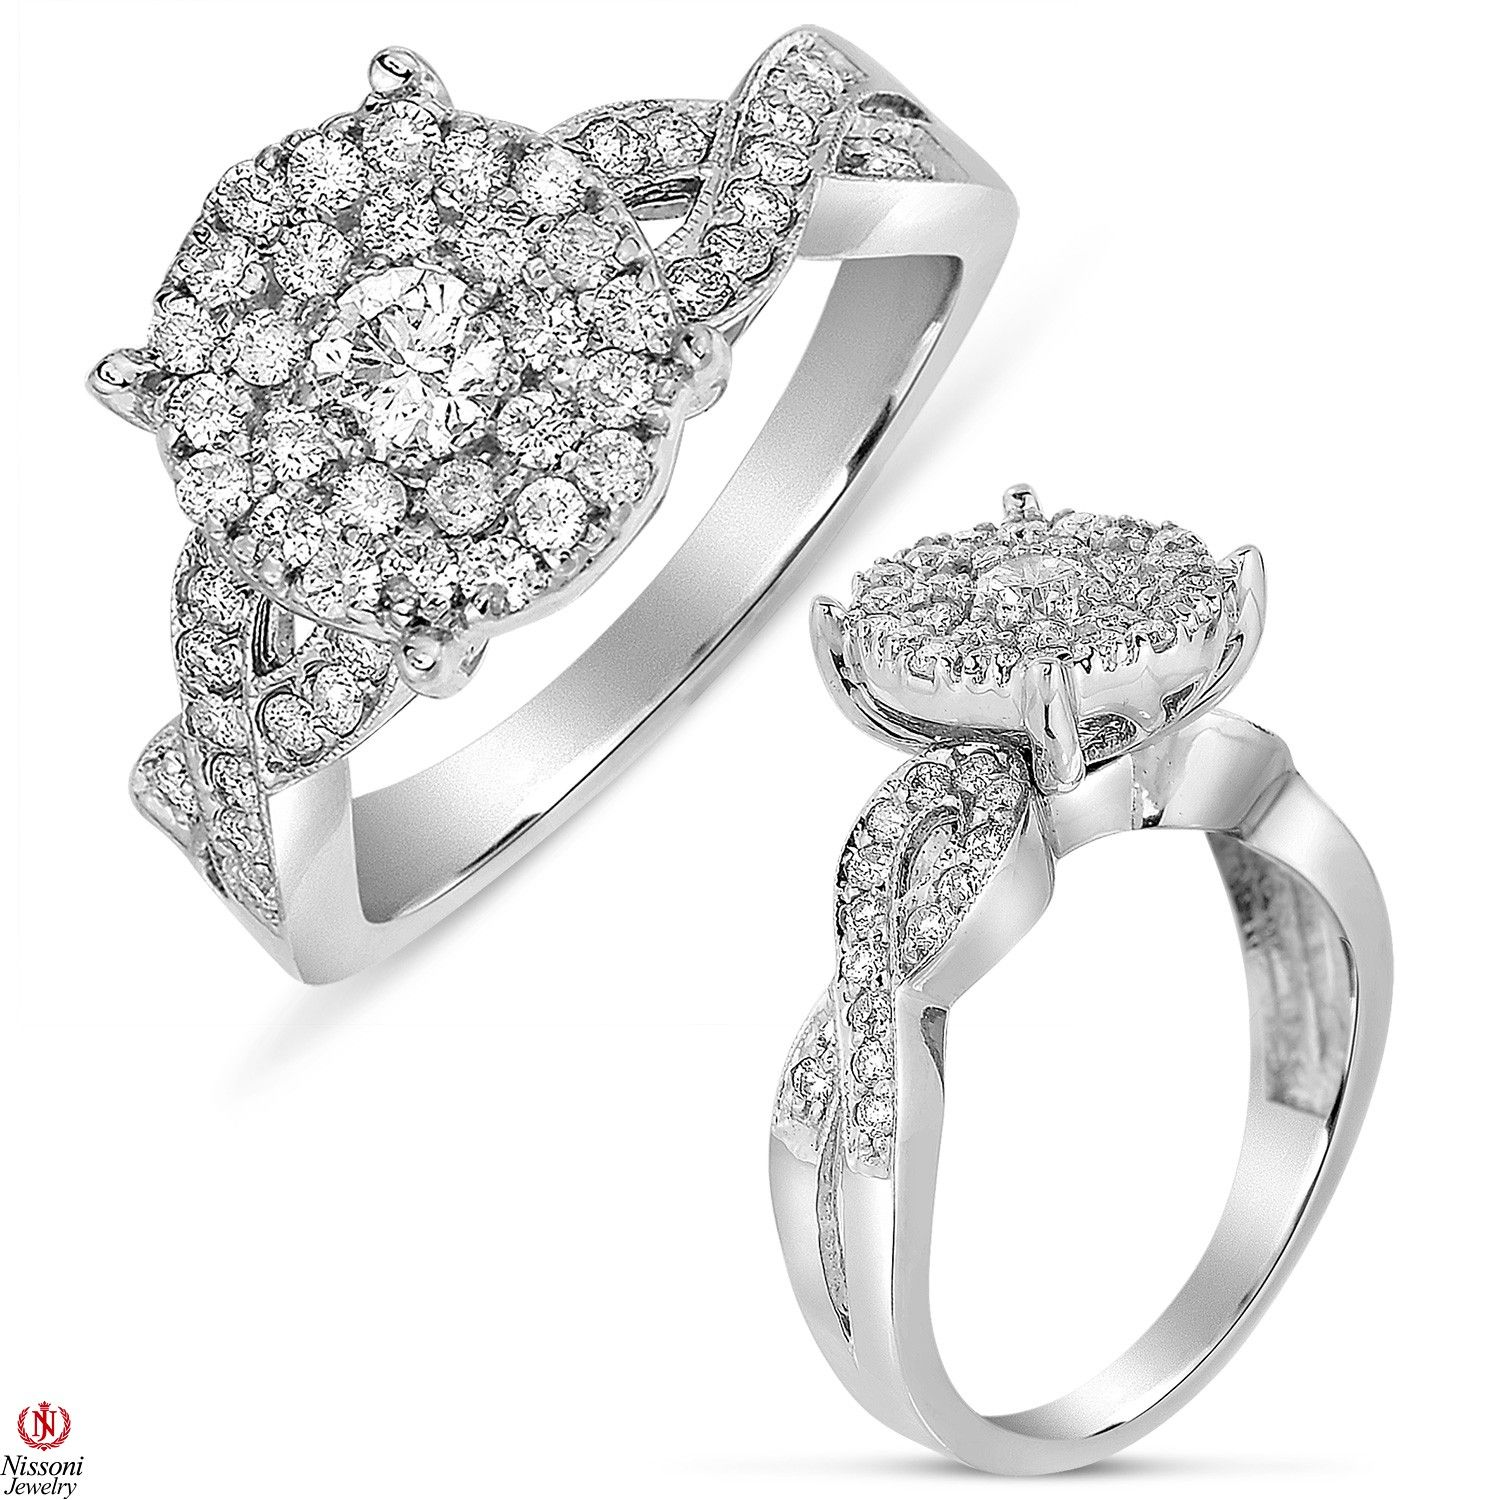 Ebay NissoniJewelry presents La s Diamond Cluster Engagement